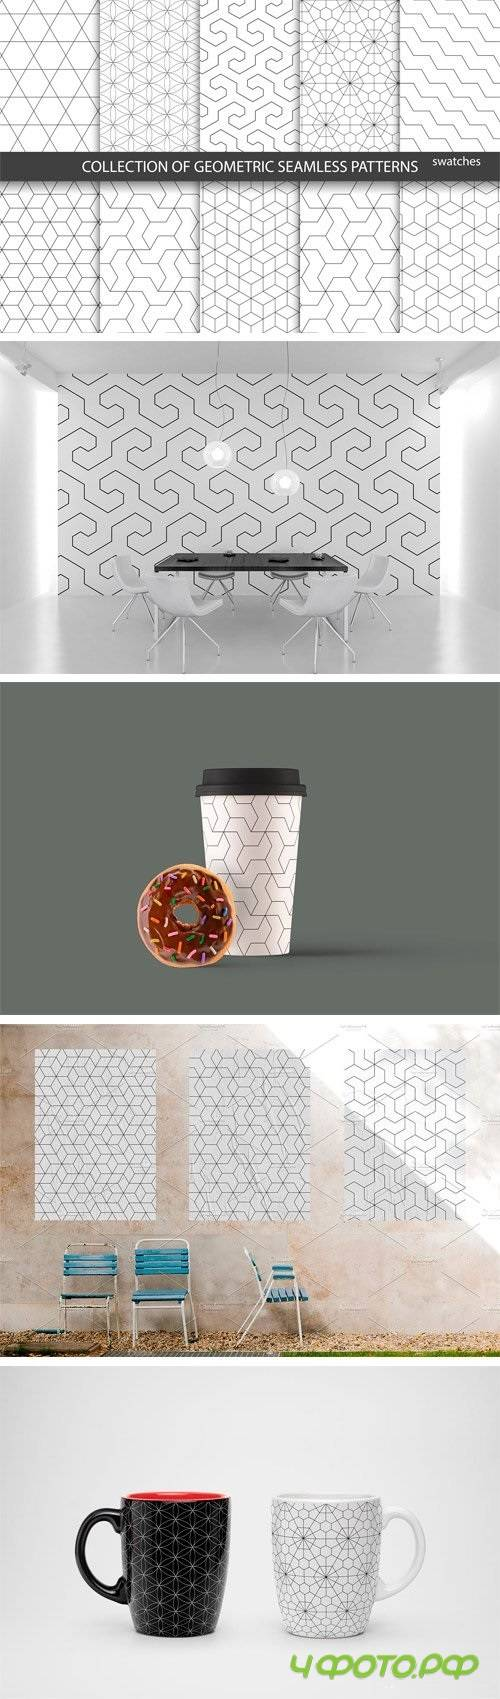 Ornamental Geometric Patterns - 1340324